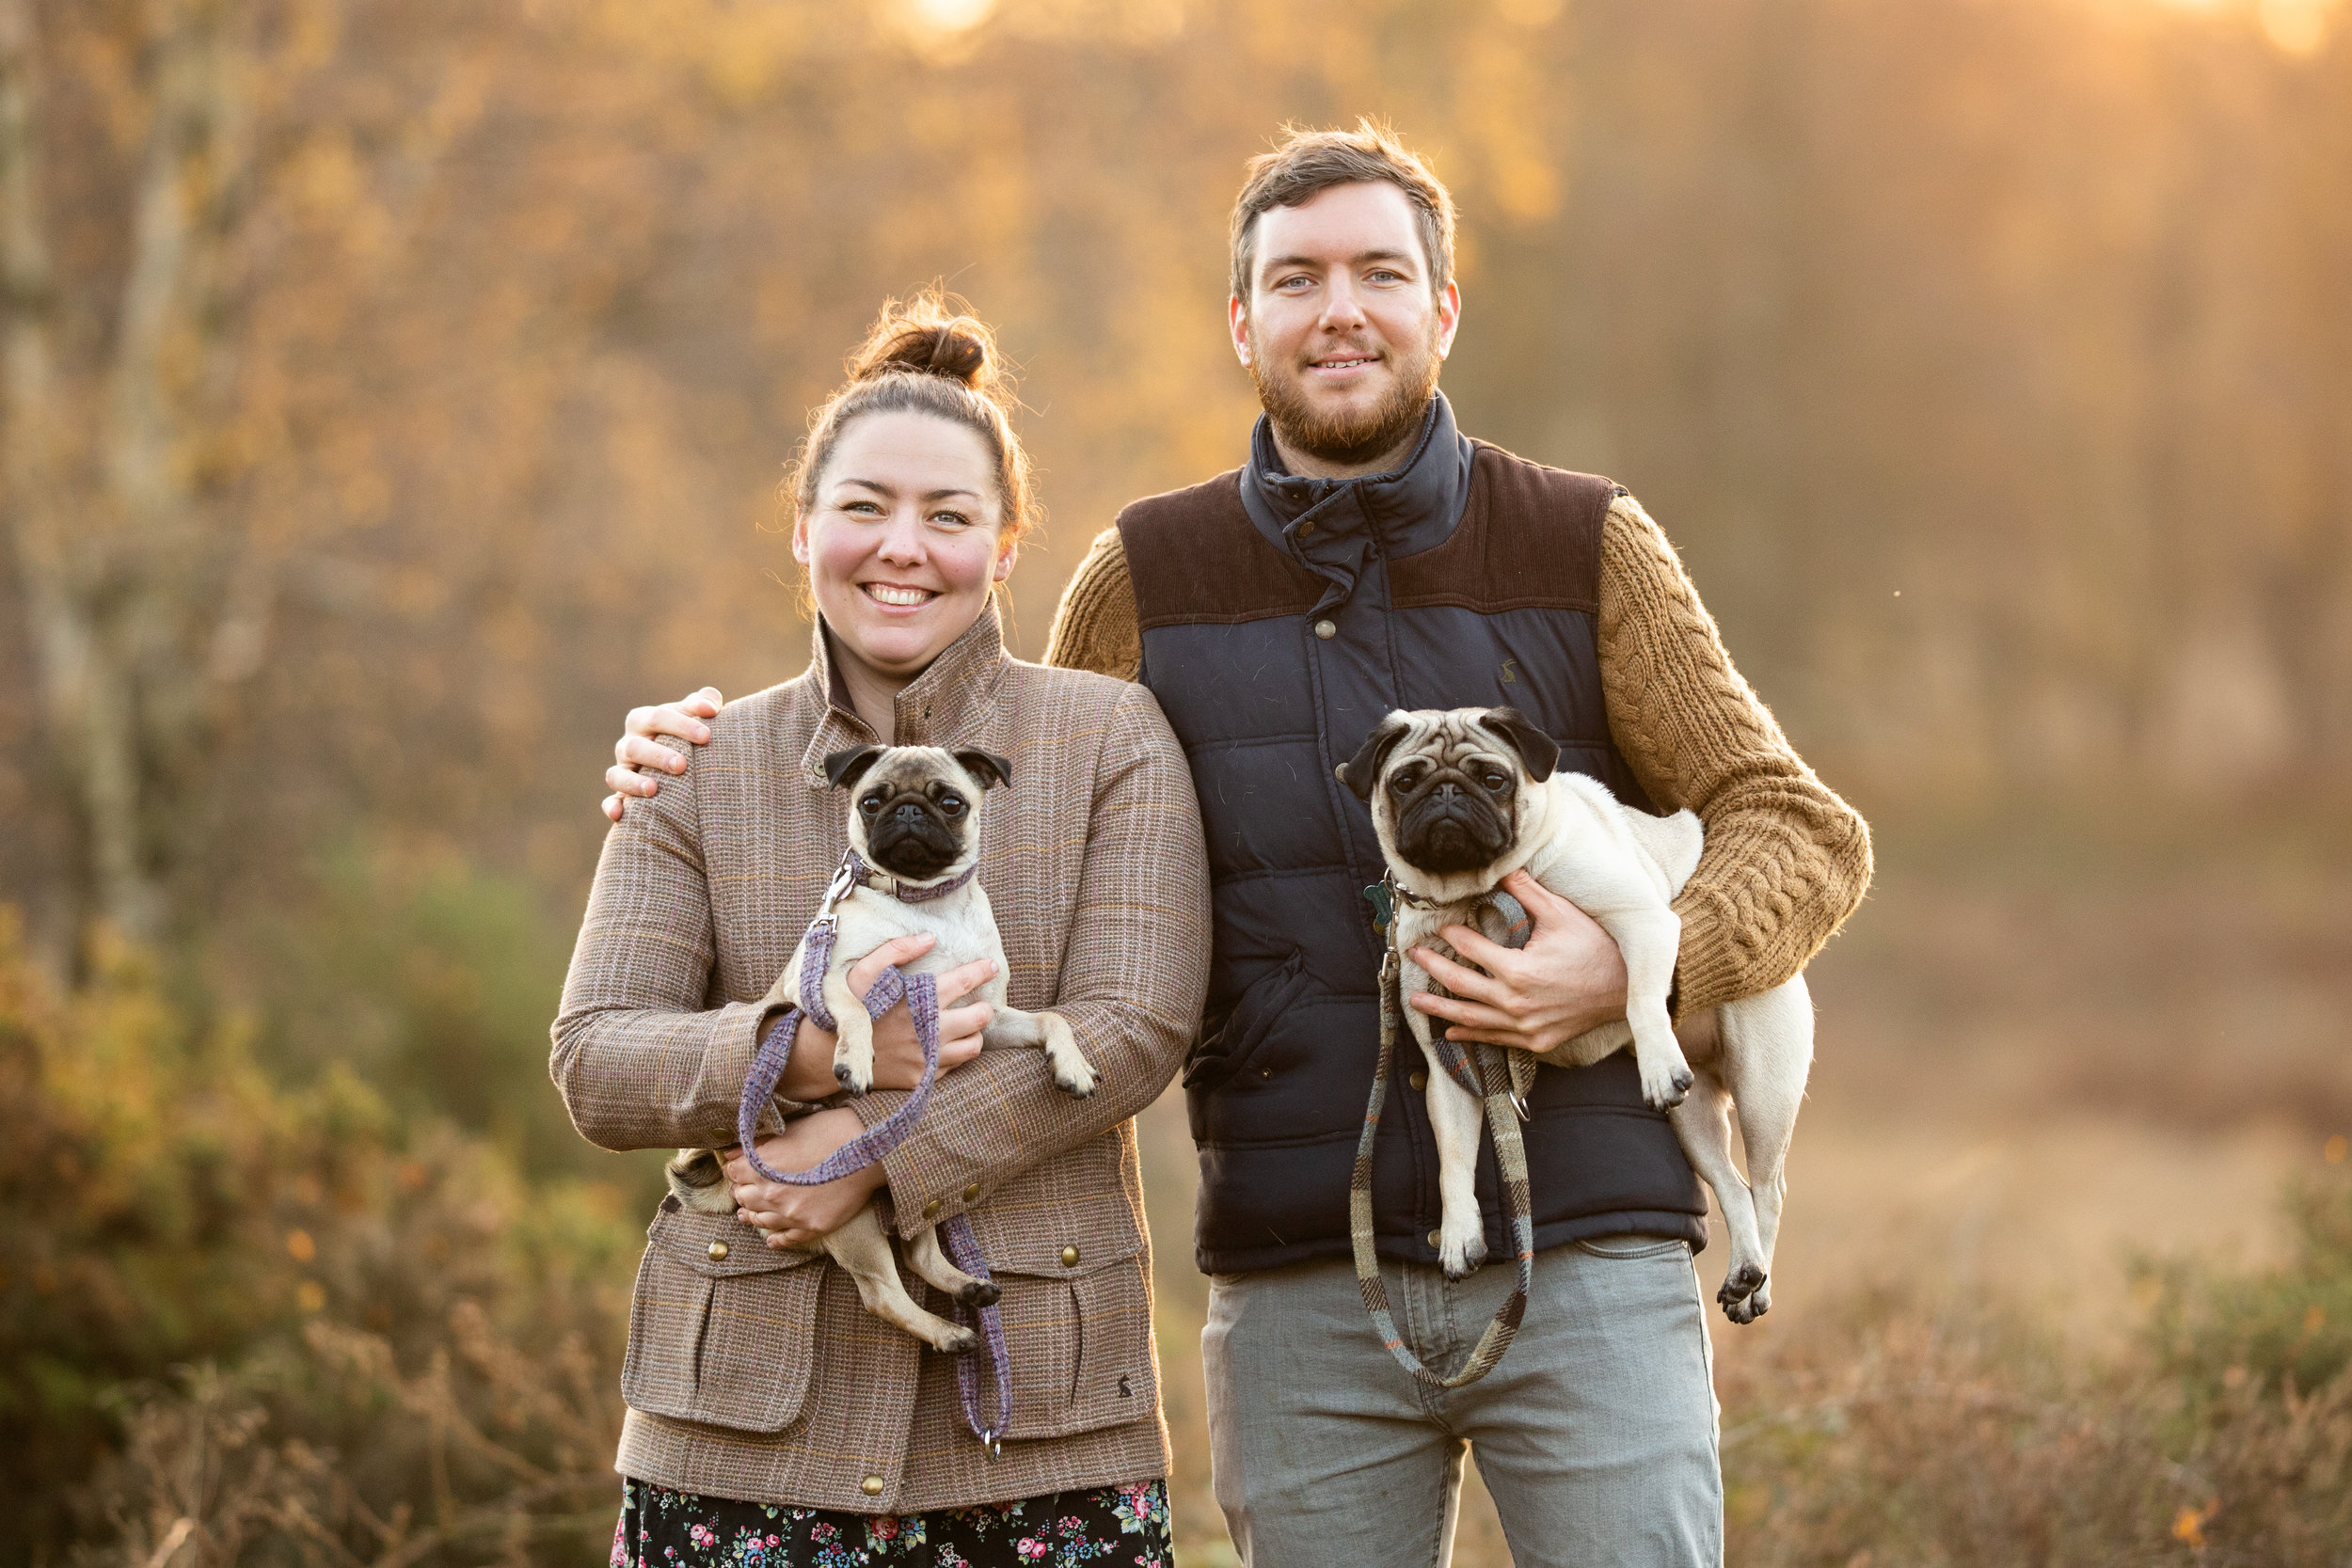 lea-cooper-photography_Willenhall_Wolverhampton_west-midlands_family-photography_autumn-shoot_couple-and-pets.jpg